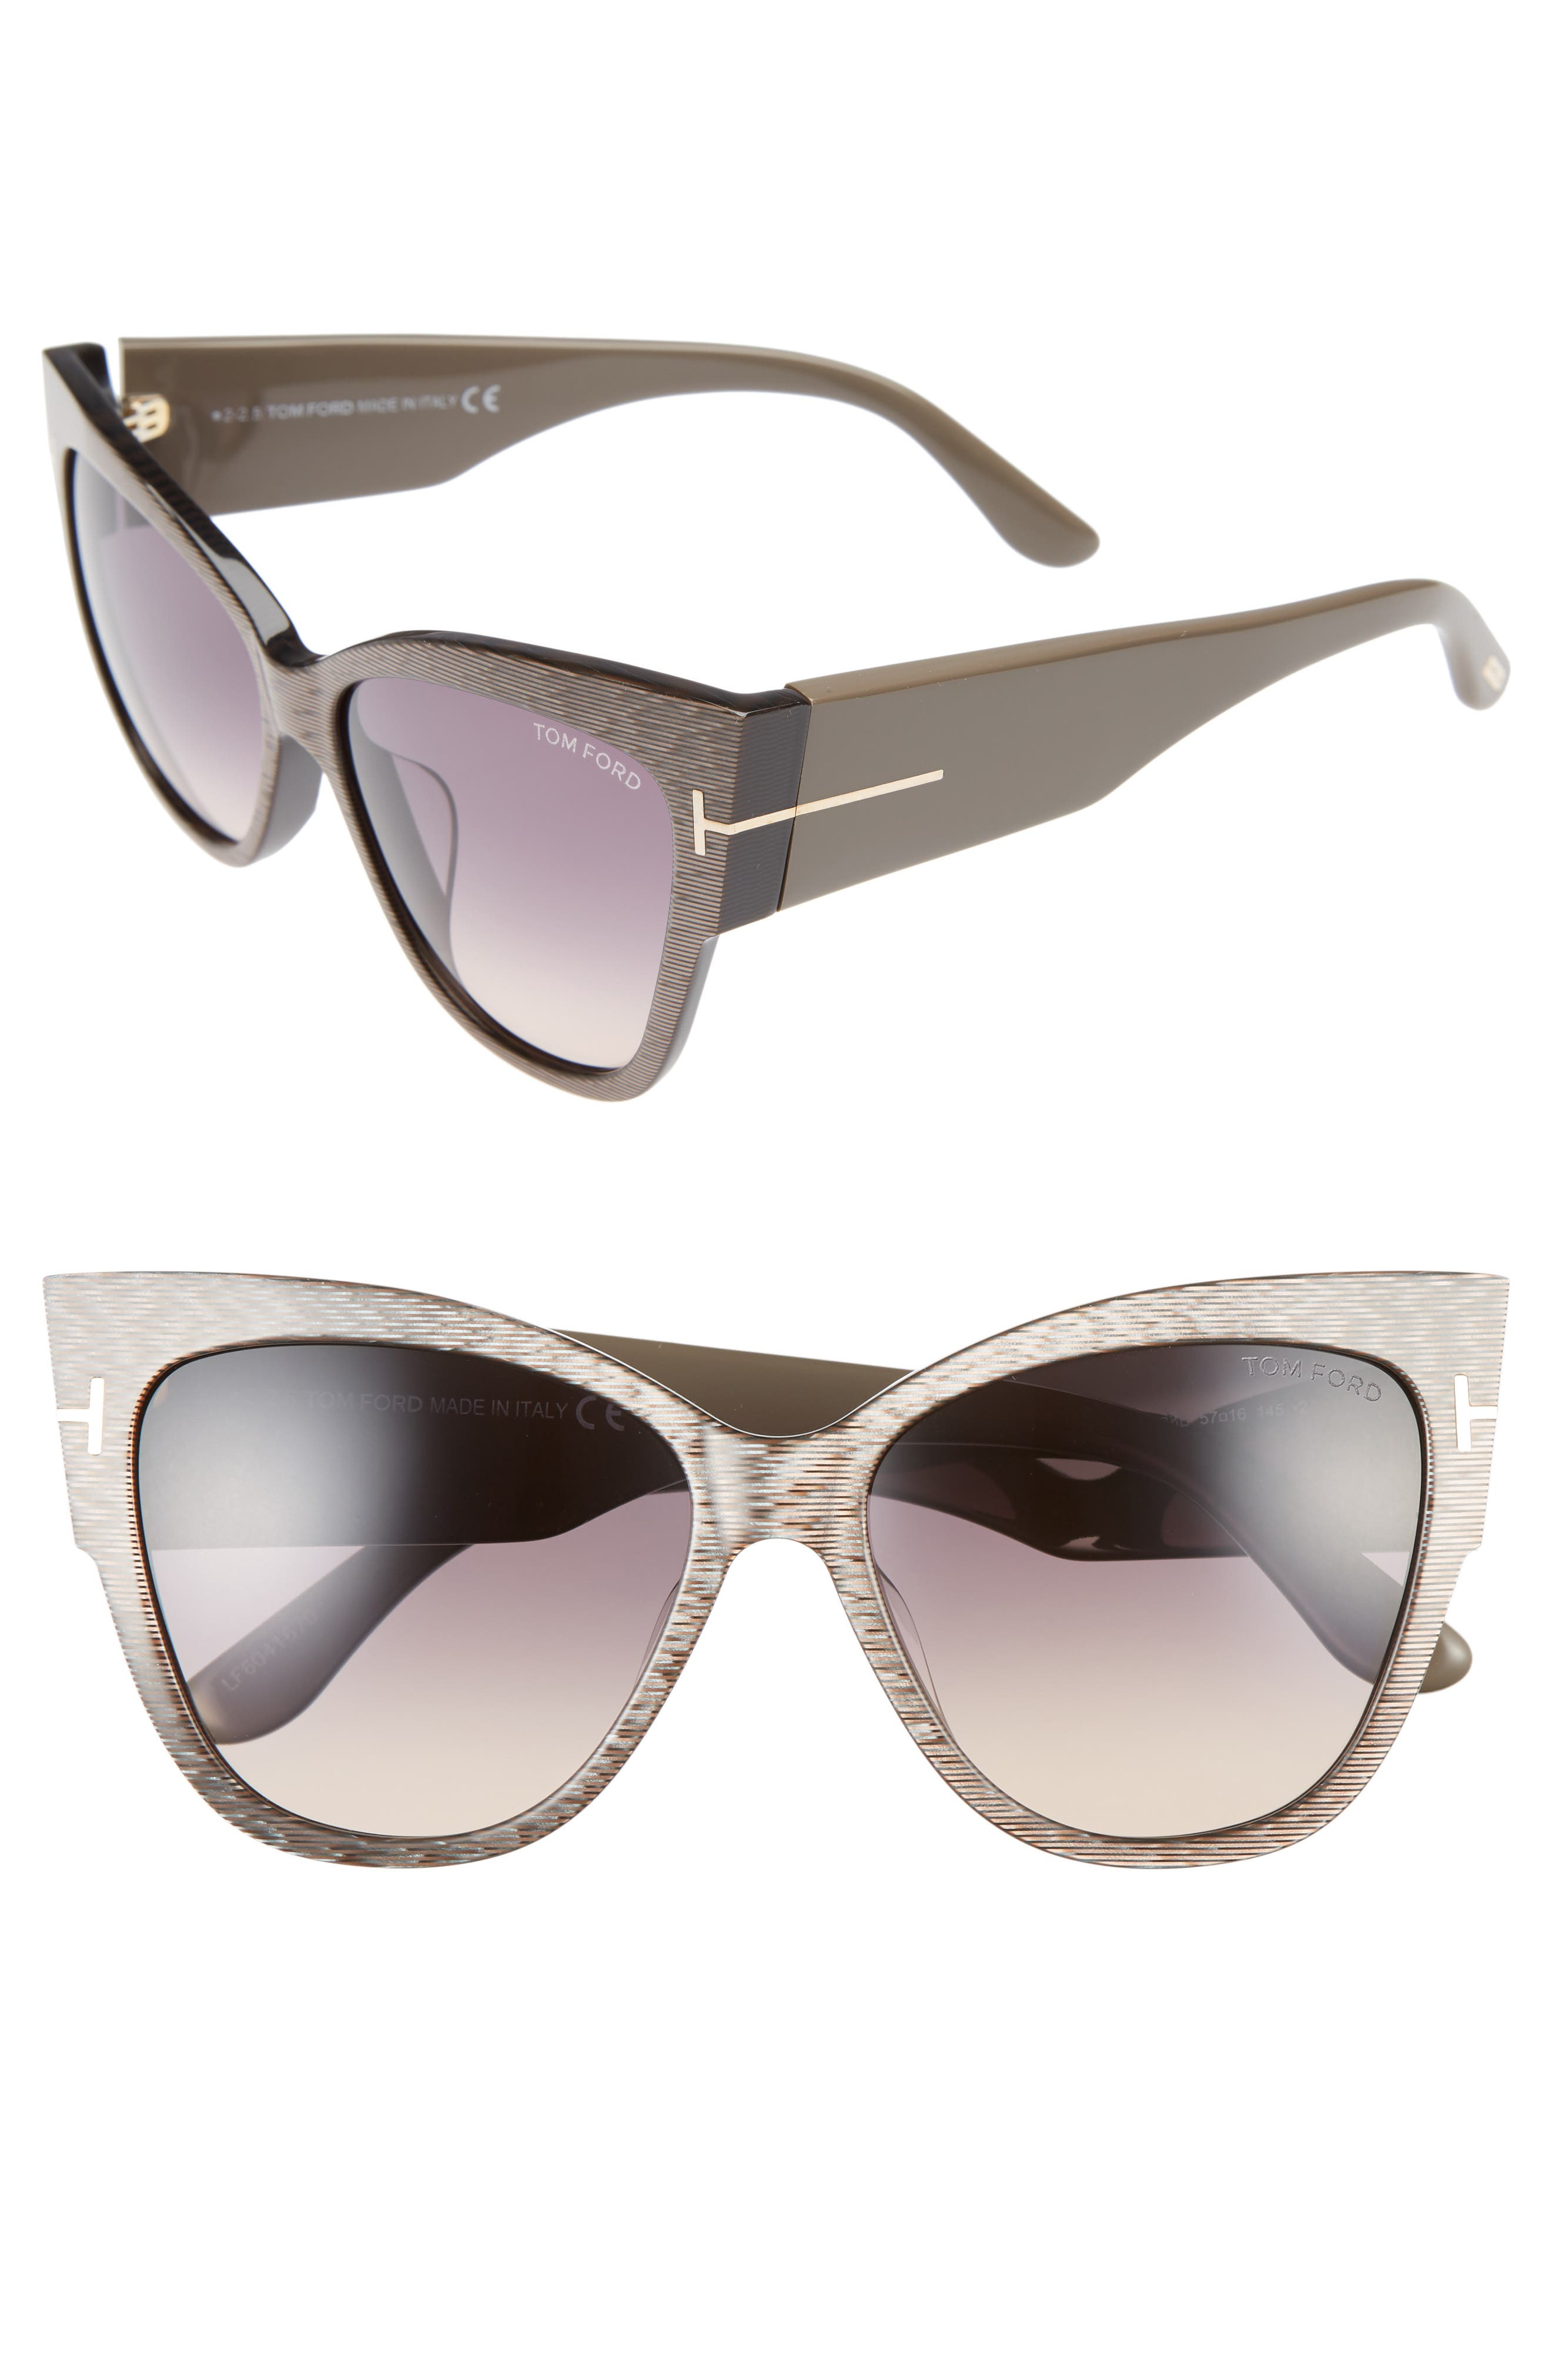 Main Image - Tom Ford Anoushka 57mm Special Fit Butterfly Sunglasses